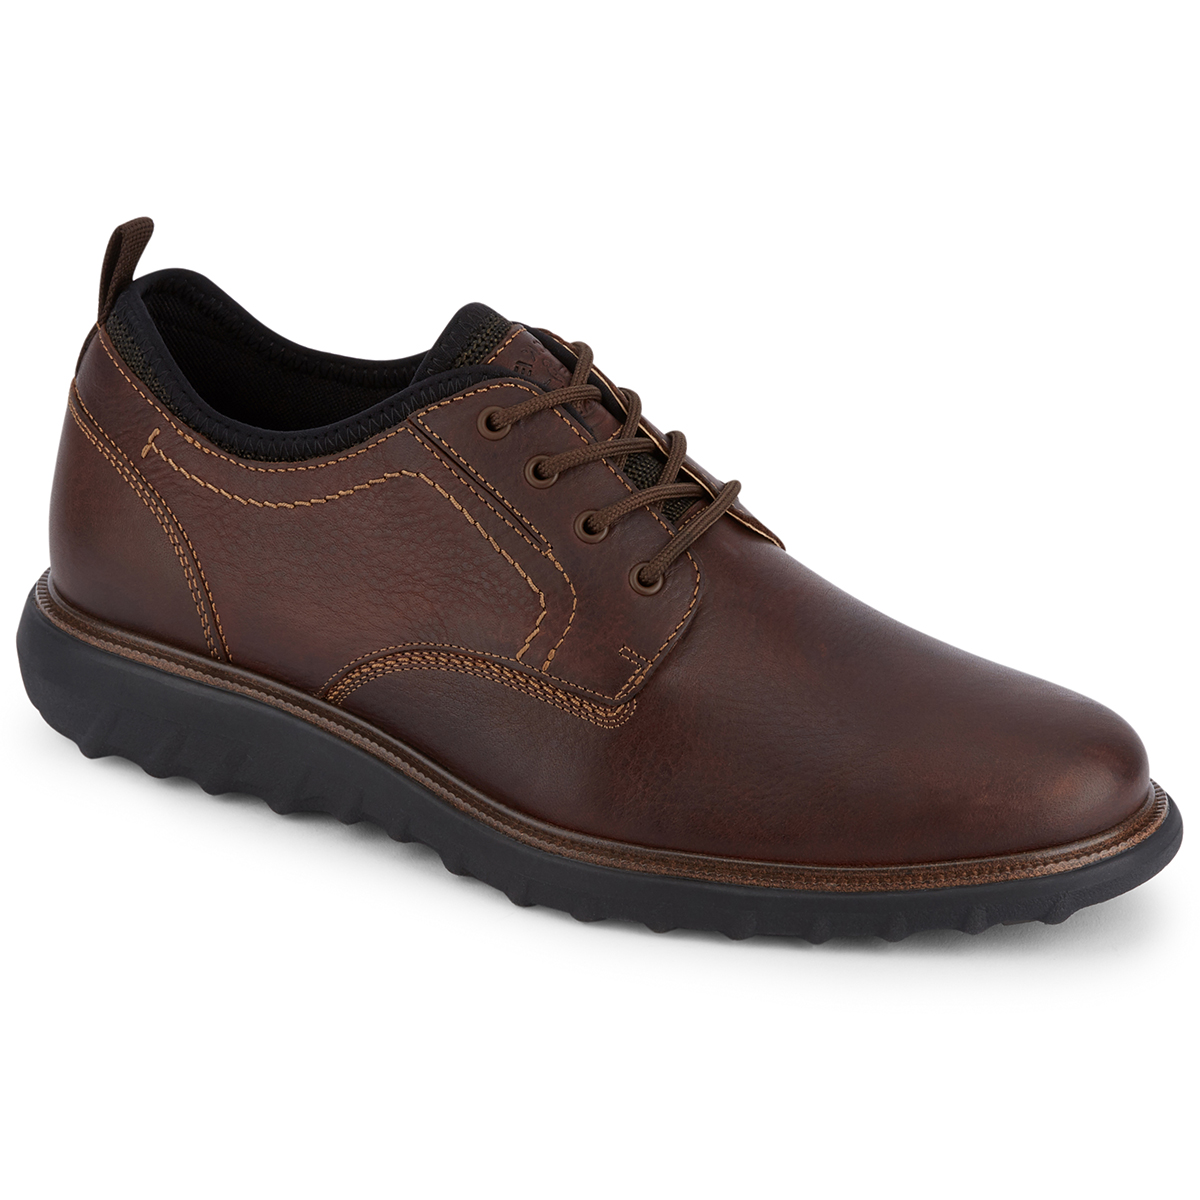 Dockers Men's Armstrong Oxford Dress Shoe - Brown, 9